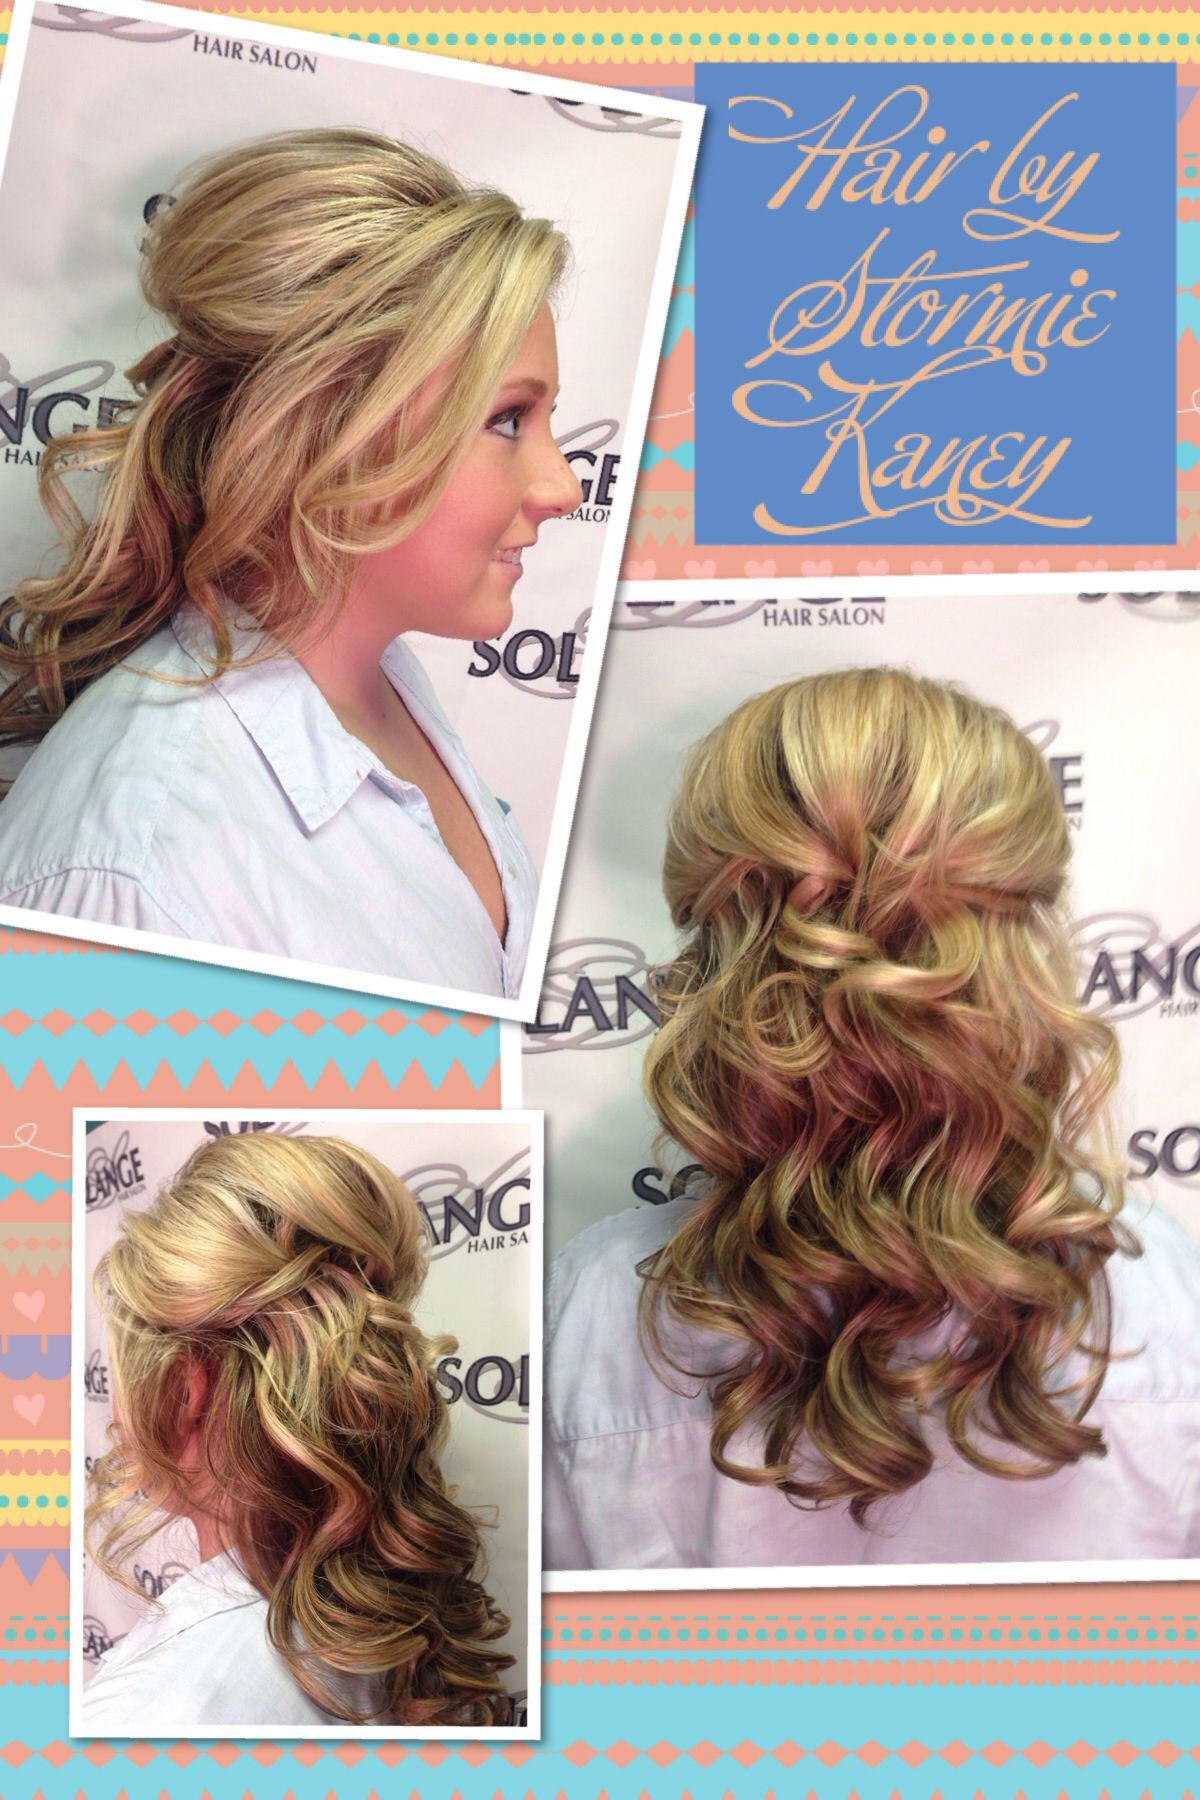 Hair By Stormie Kaney For Solange Salon Fayetteville Ar Prom